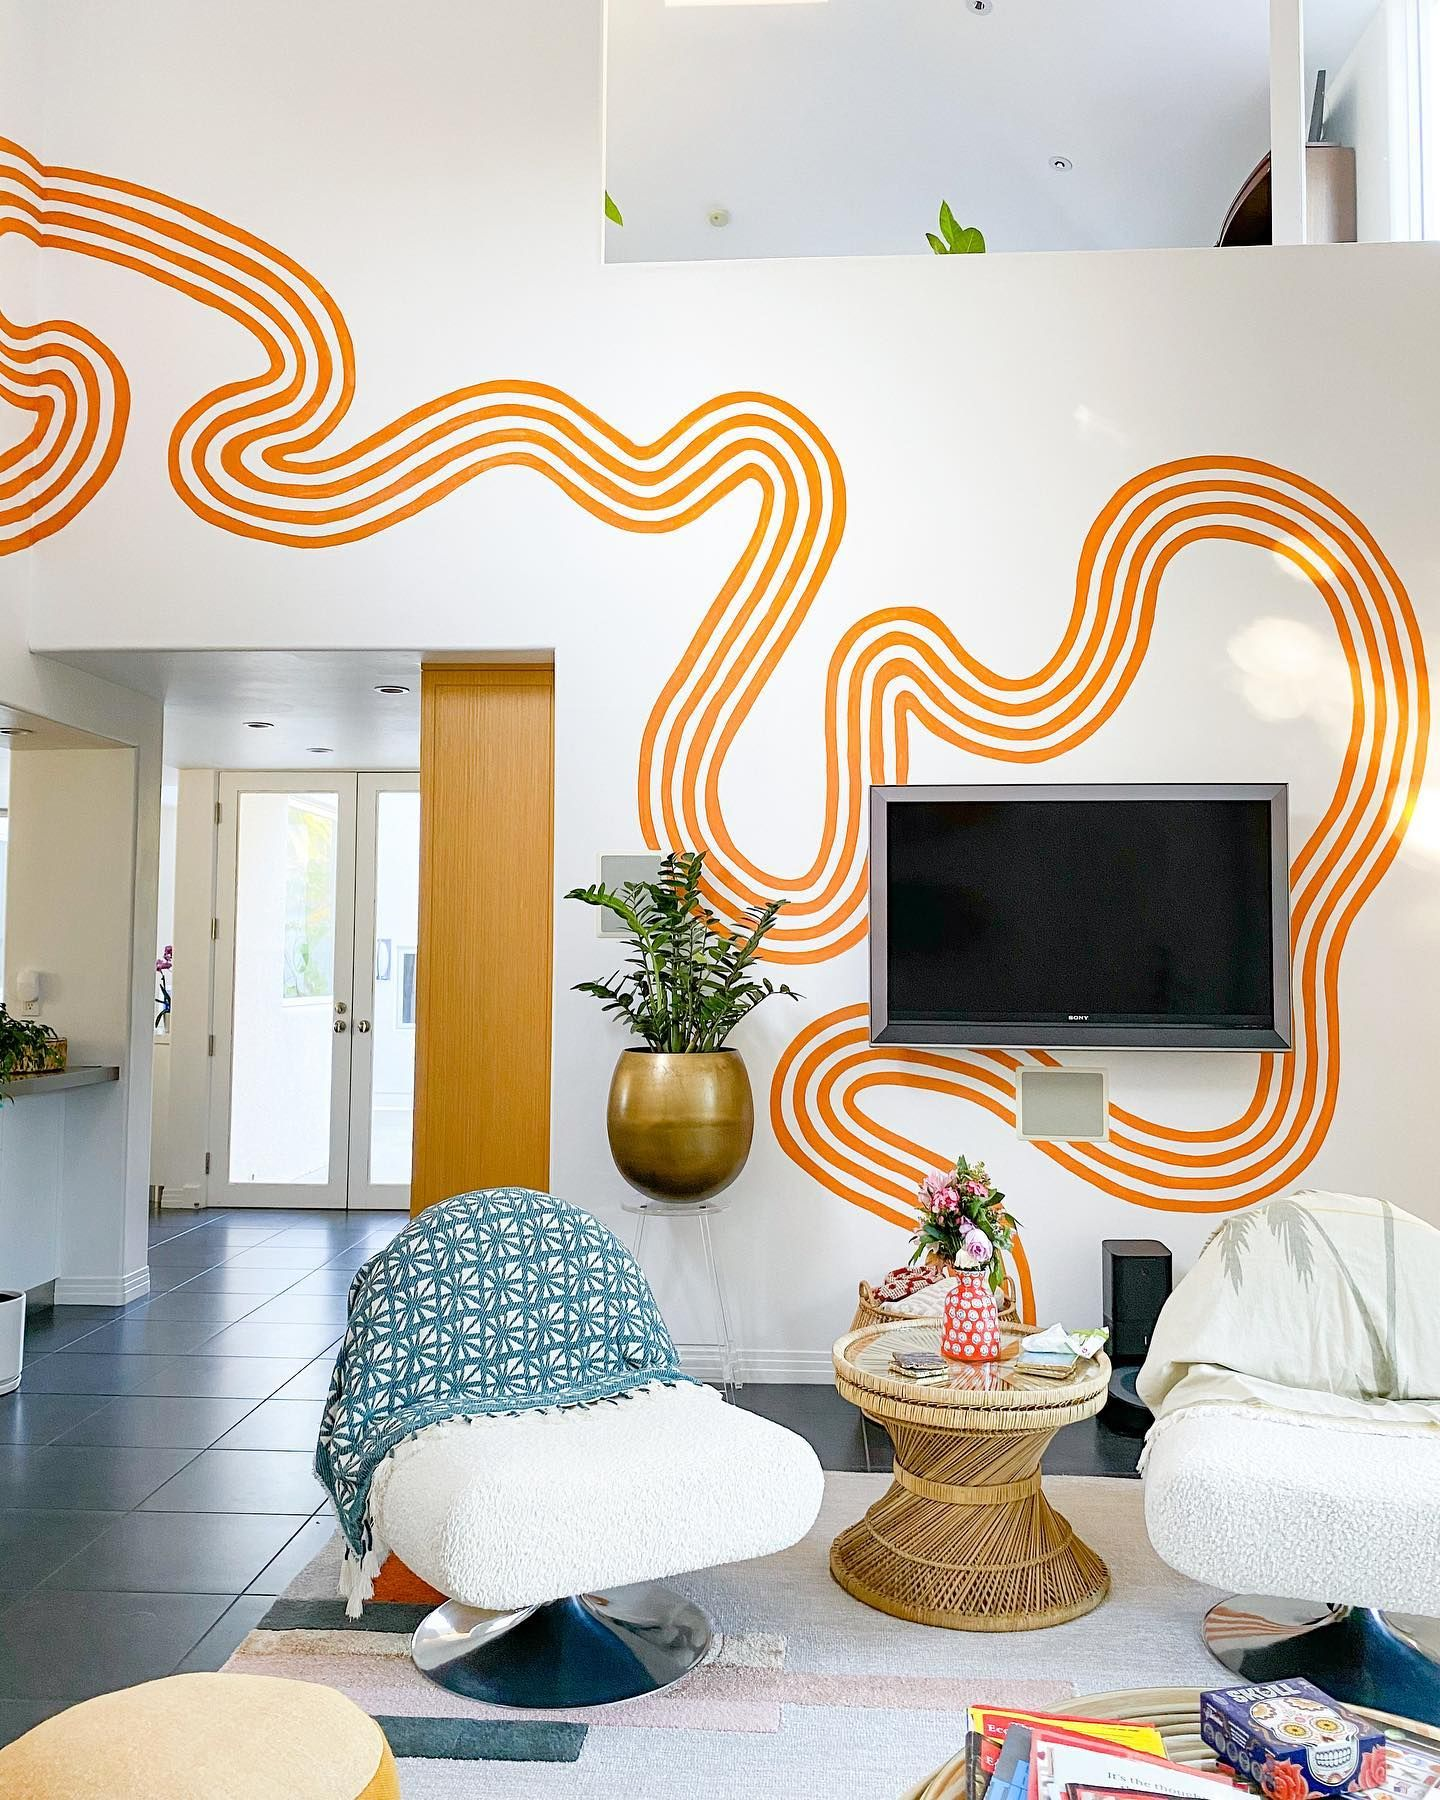 Colorful Gallery Wall with a Warm, Sunset Mural